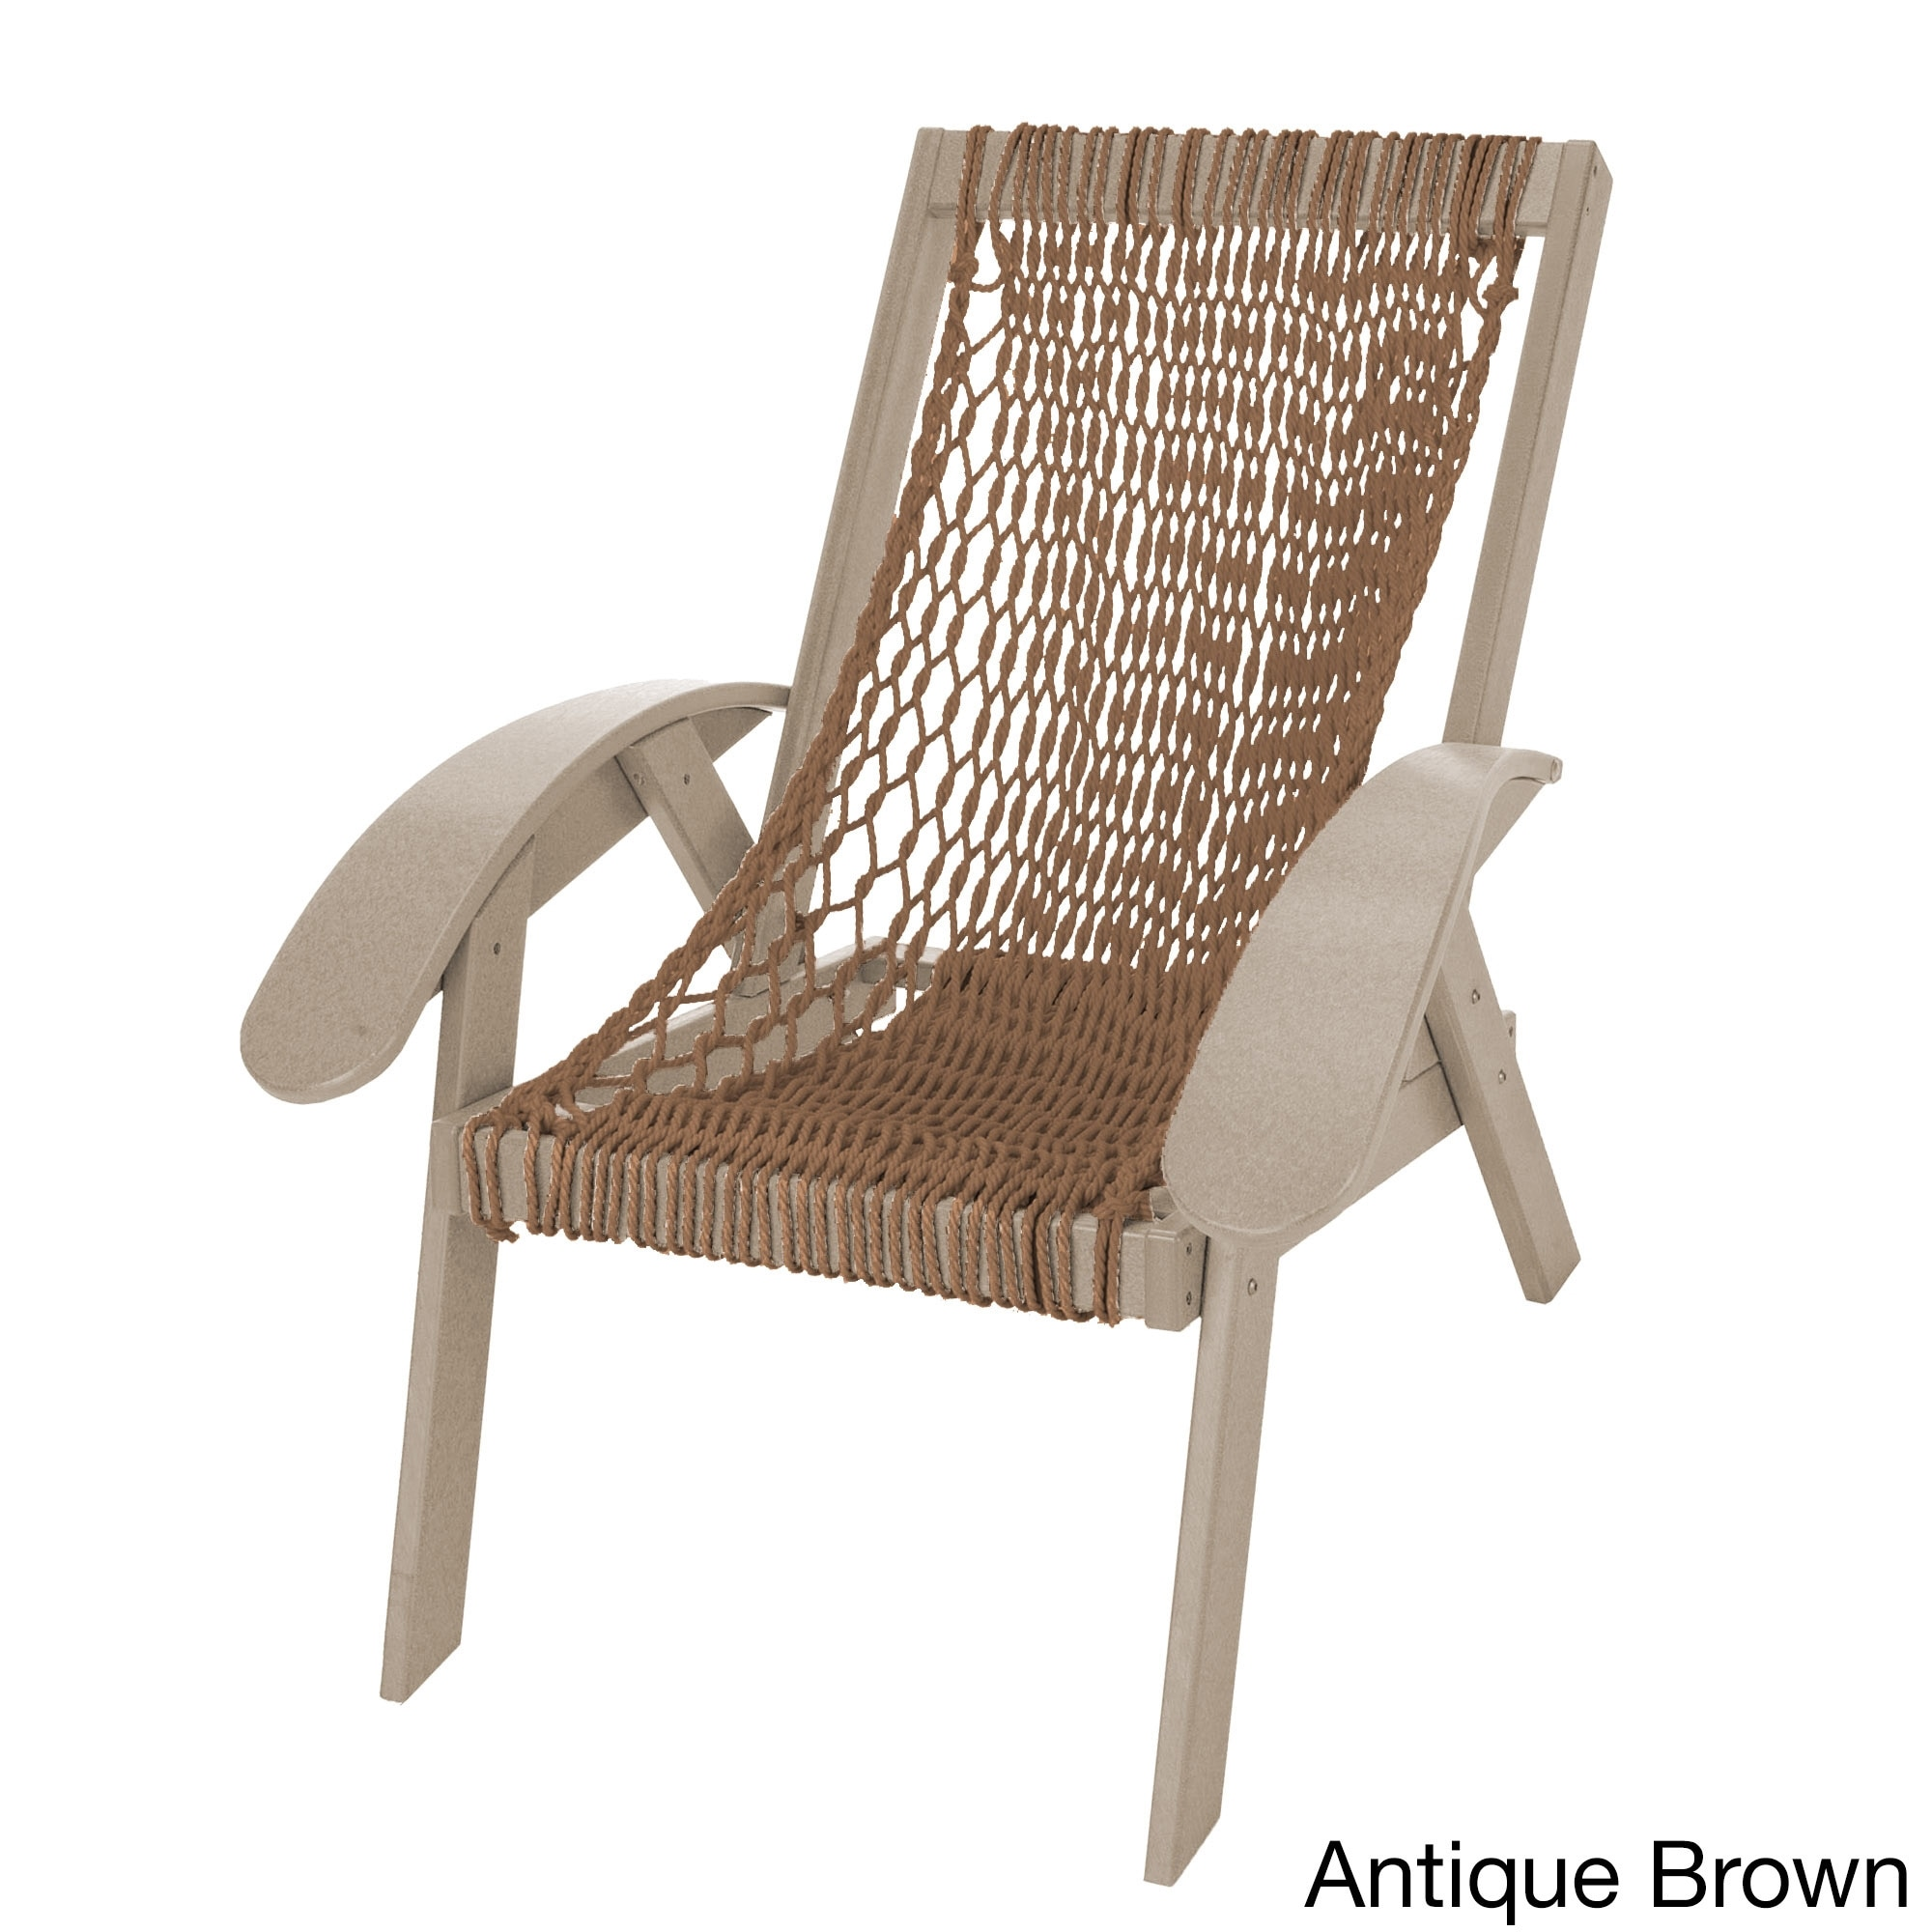 Coastal Duracord Weatherwood Chair Antique Brown